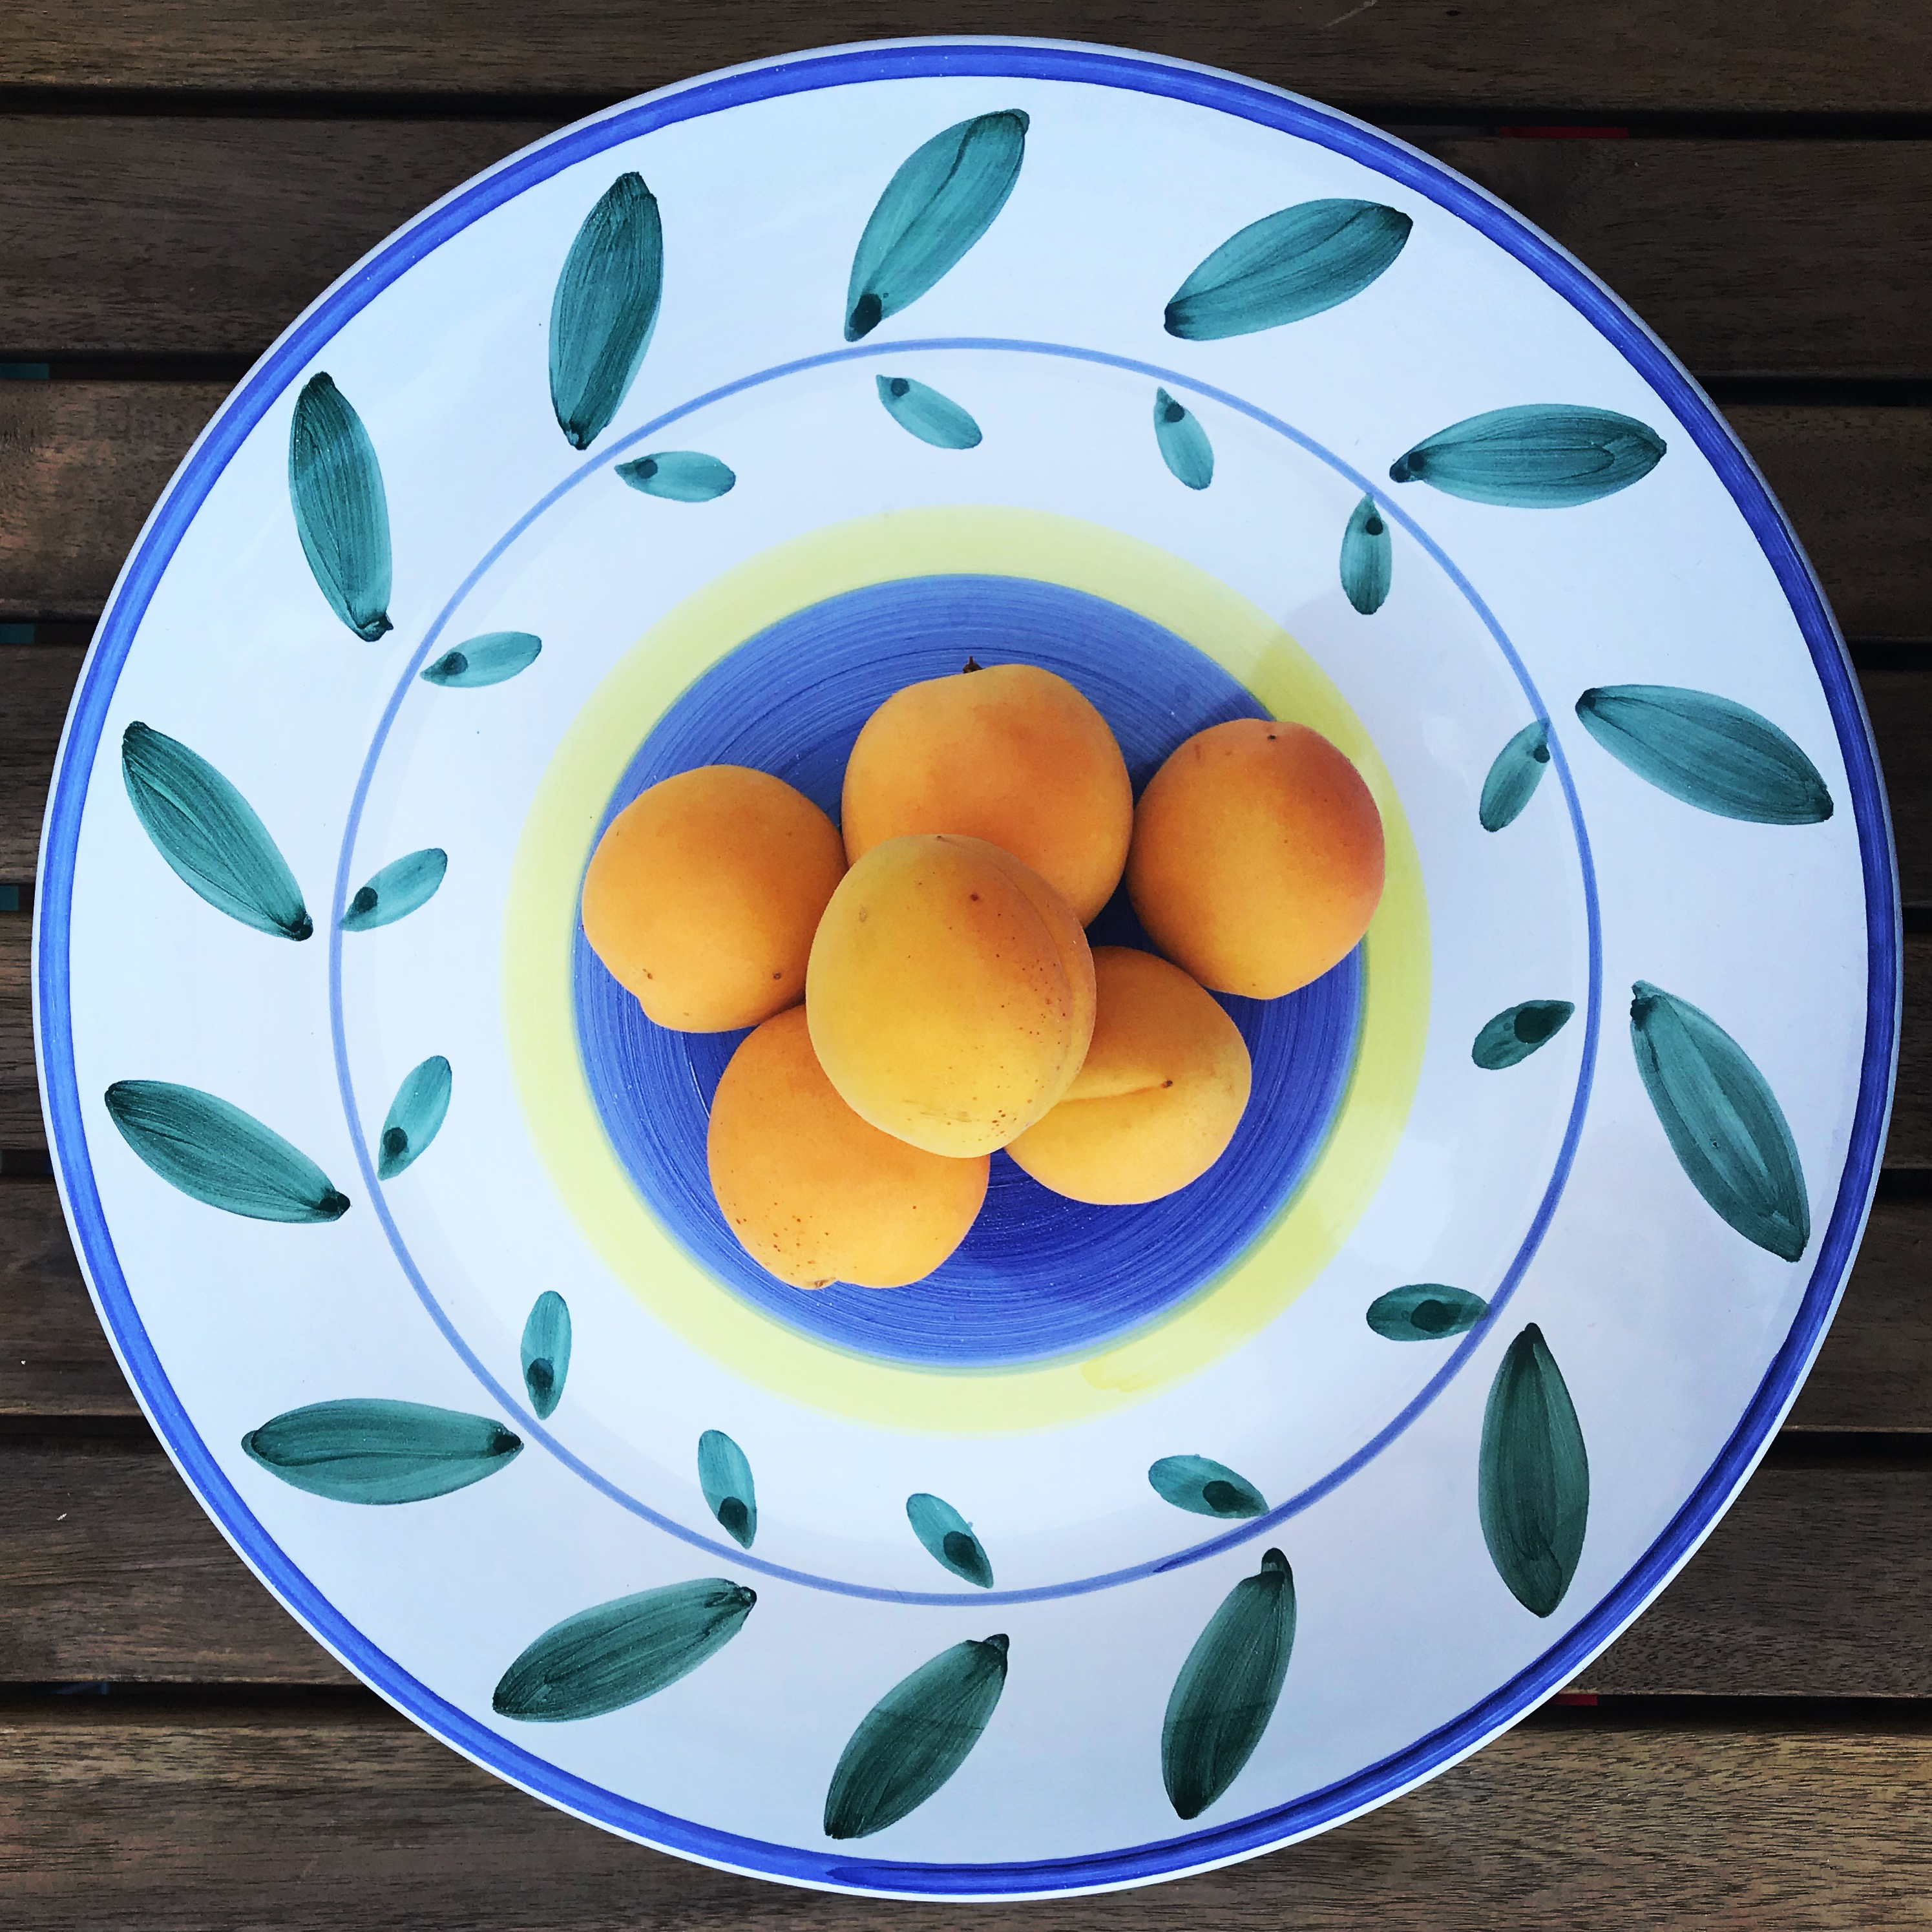 Food to help hair growth: apricots for vitamins and nutrients